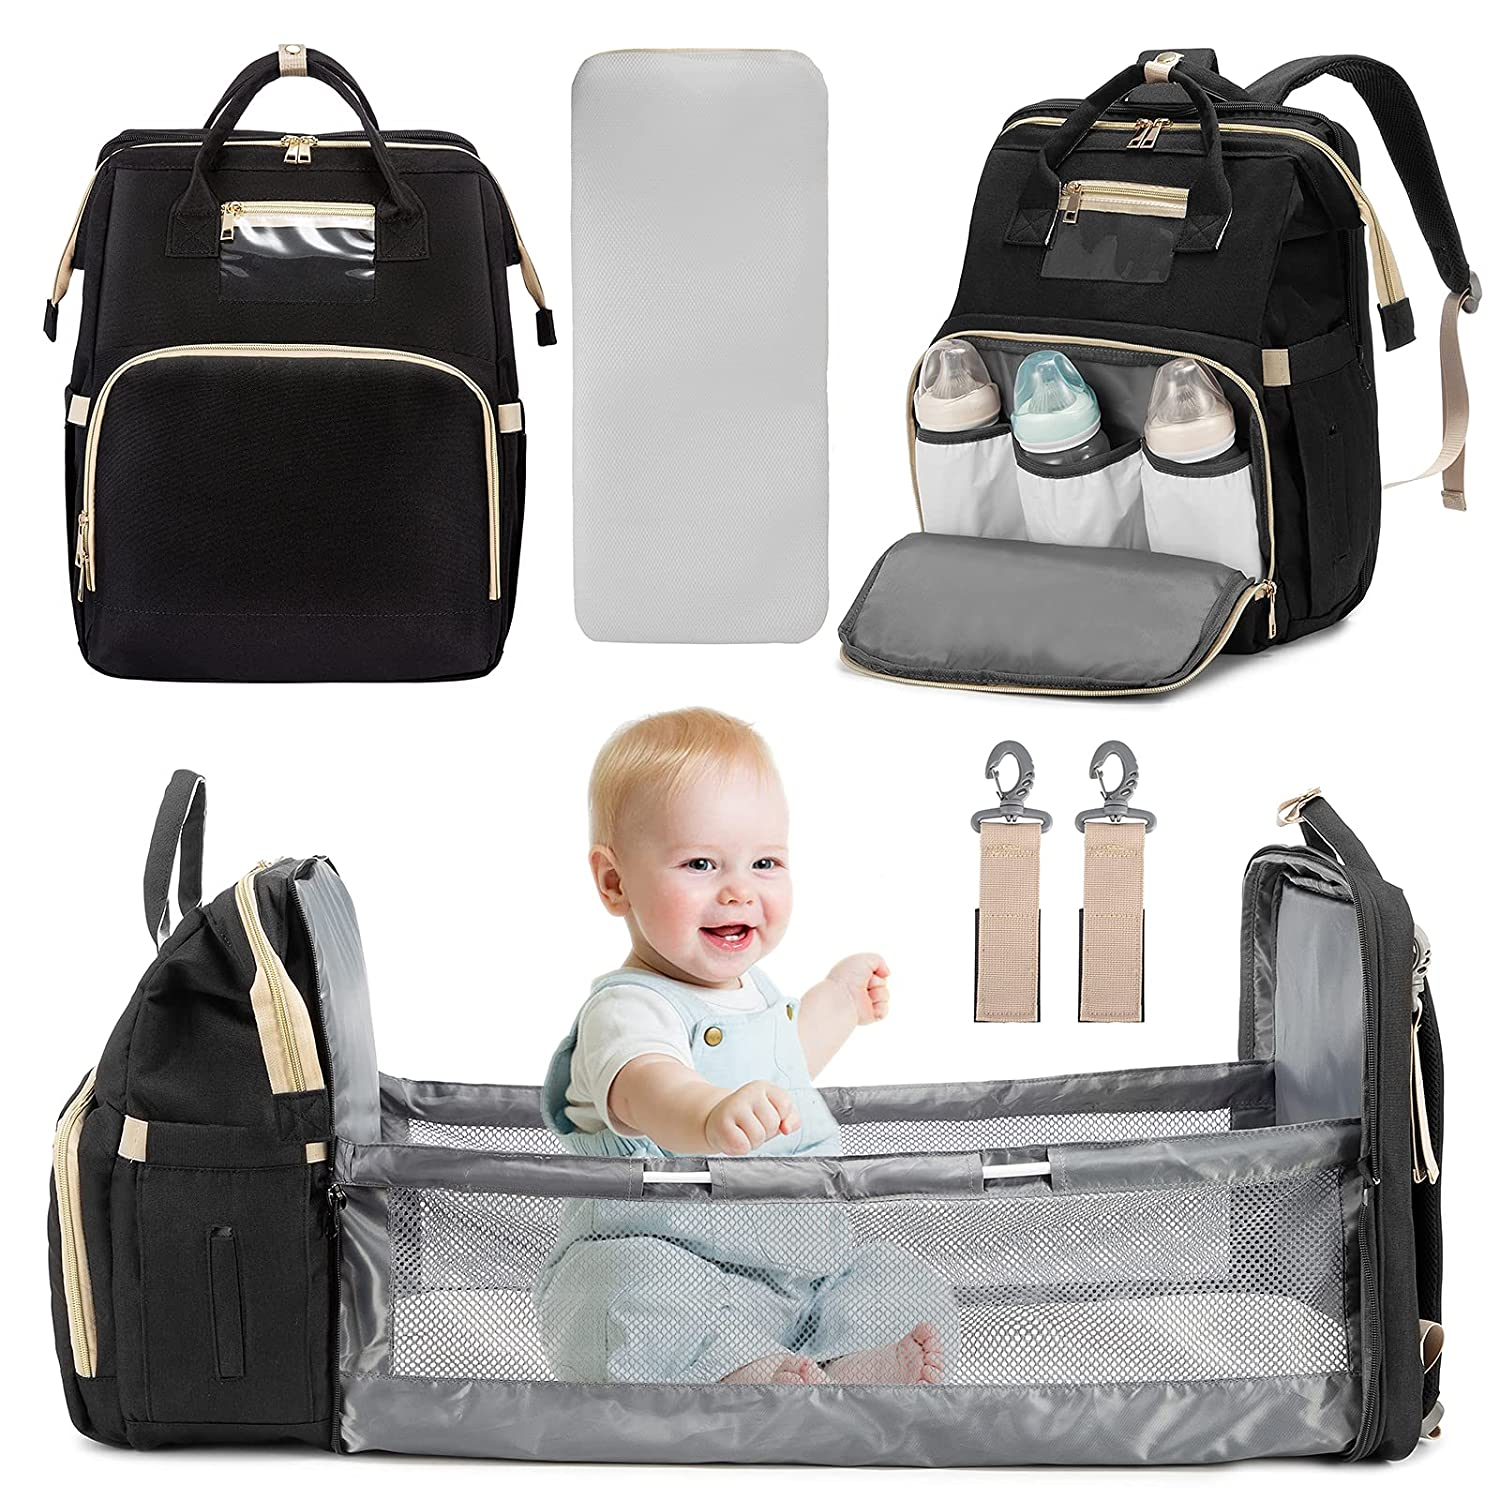 REALER 3 in 1 Diaper Bag Backpack, Diaper Bag with Changing Station, Mommy Bag Baby Bag Registry for Baby Shower Gifts, Baby Diaper Bag for Boys Girls with Insulated Material Black